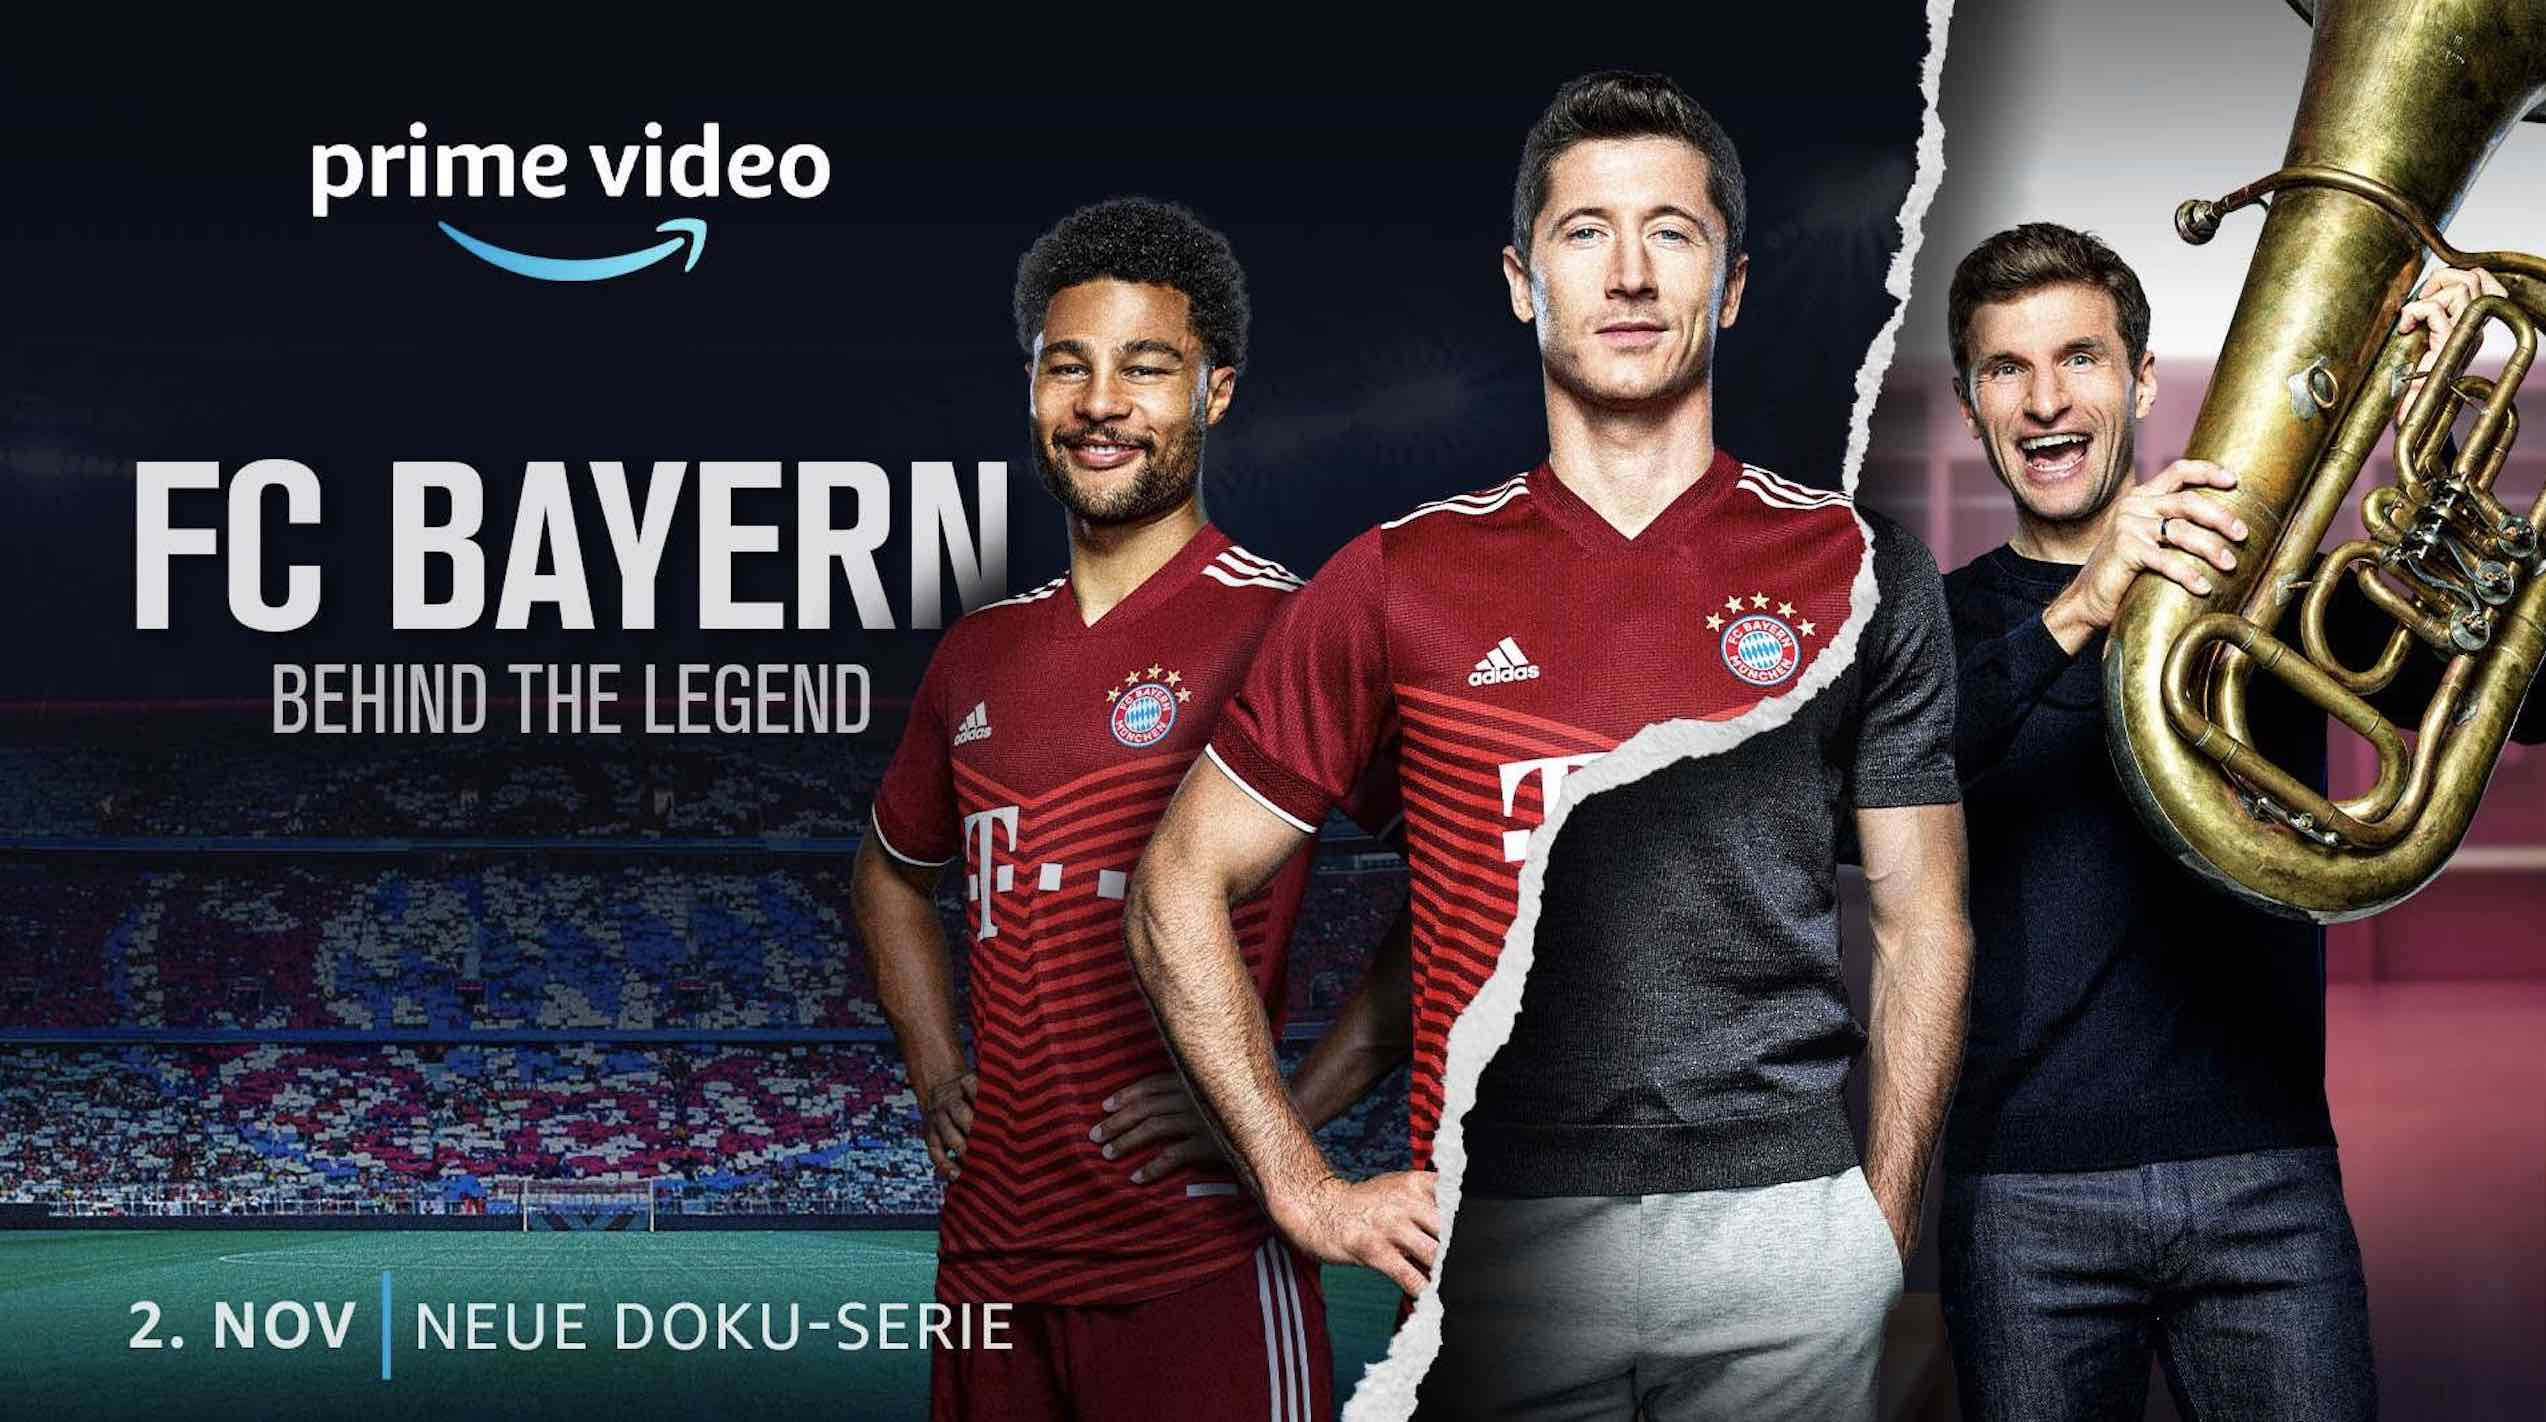 FC Bayern - Behind the Legend; © Amazon Prime Video